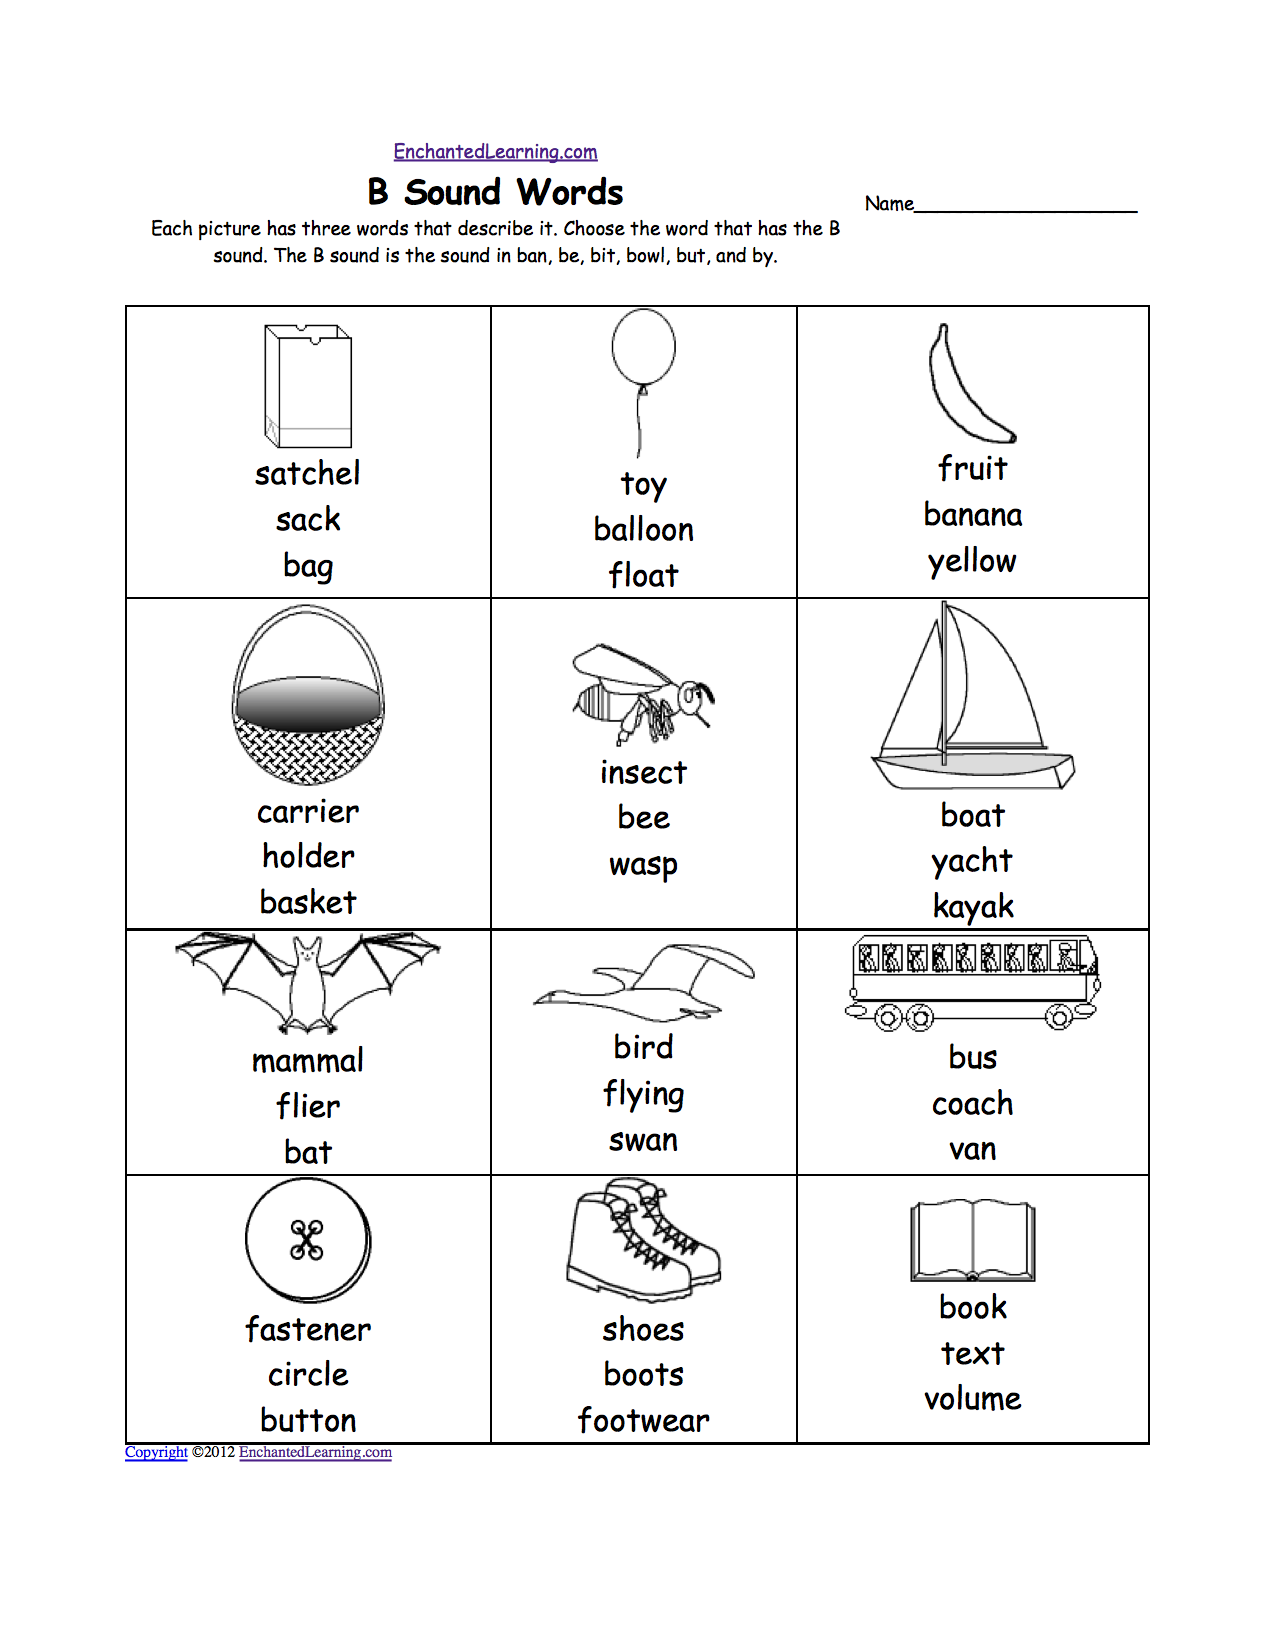 Aldiablosus  Fascinating Phonics Worksheets Multiple Choice Worksheets To Print  With Lovable Quotbquot Sound Phonics Worksheet Multiple Choice Each Picture Has Three Words That Describe It Choose The Word That Has A Quotbquot Sound The Quotbquot Sound Is The Sound  With Adorable Singing Worksheets Also French Food Vocabulary Worksheets In Addition The Gingerbread Man Worksheets And Omnivore Herbivore Carnivore Worksheet As Well As Grade  Fraction Worksheets Additionally Animals Habitats Worksheets From Enchantedlearningcom With Aldiablosus  Lovable Phonics Worksheets Multiple Choice Worksheets To Print  With Adorable Quotbquot Sound Phonics Worksheet Multiple Choice Each Picture Has Three Words That Describe It Choose The Word That Has A Quotbquot Sound The Quotbquot Sound Is The Sound  And Fascinating Singing Worksheets Also French Food Vocabulary Worksheets In Addition The Gingerbread Man Worksheets From Enchantedlearningcom